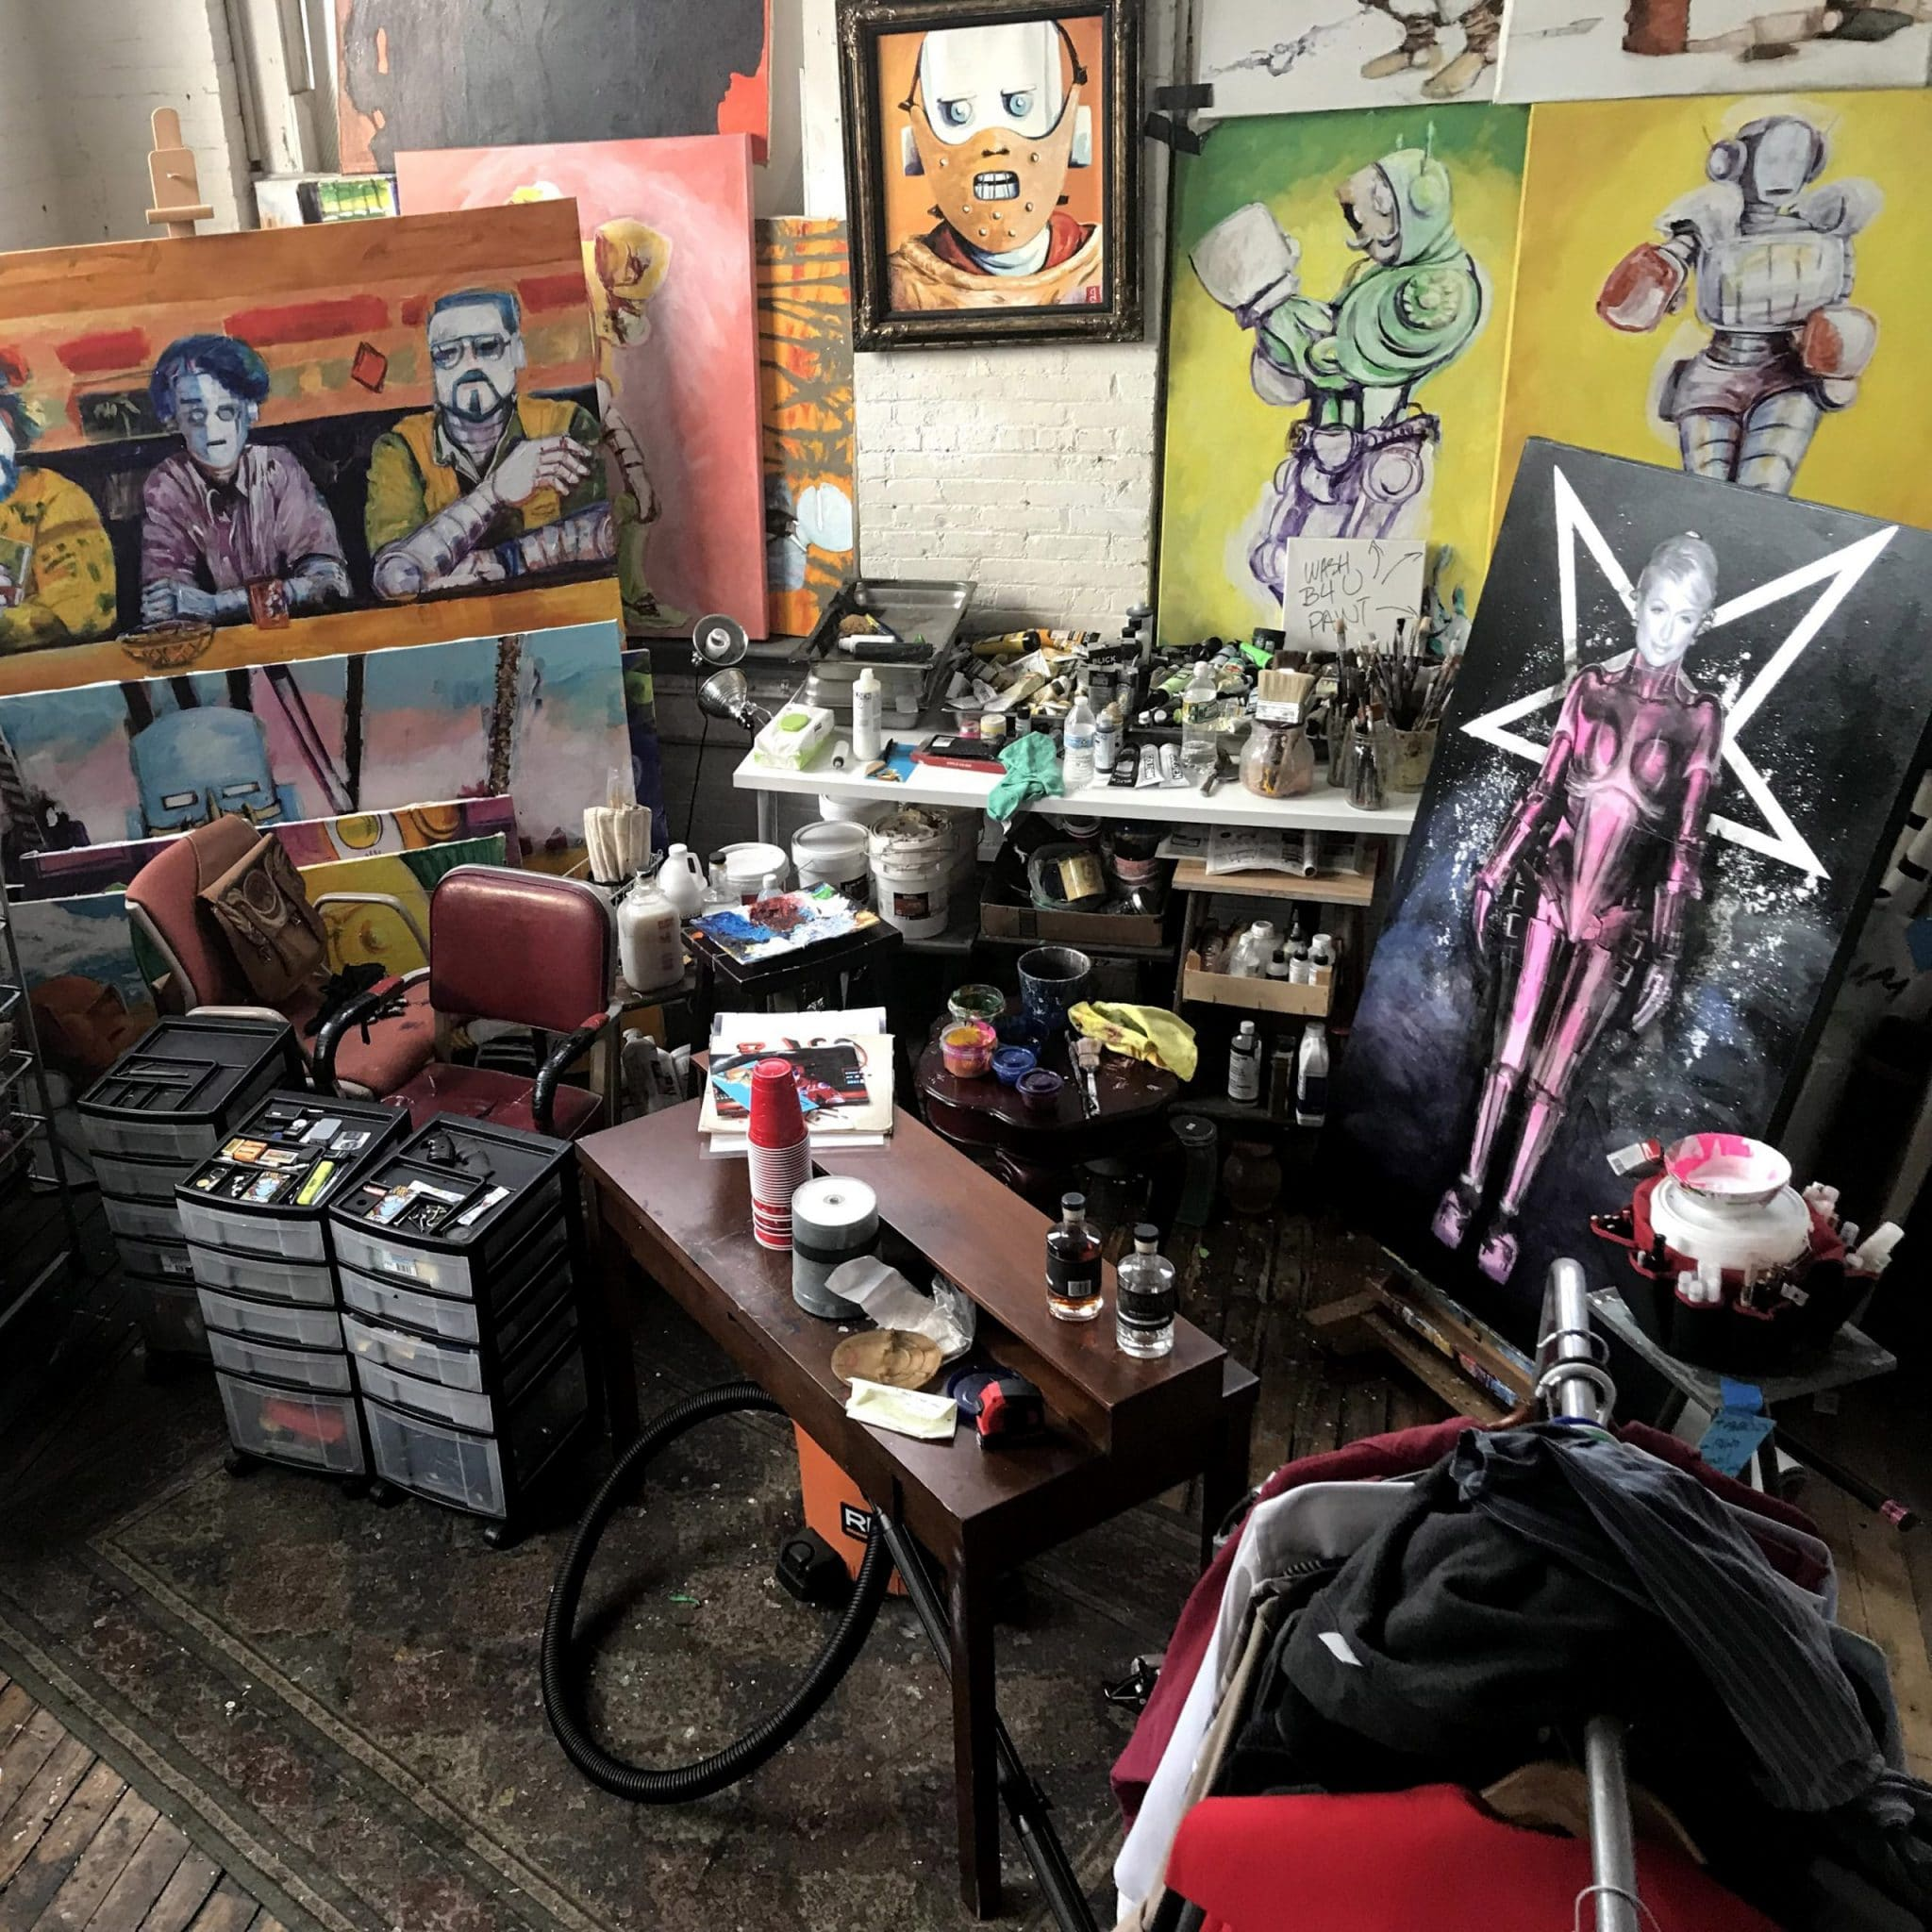 What is an art studio?